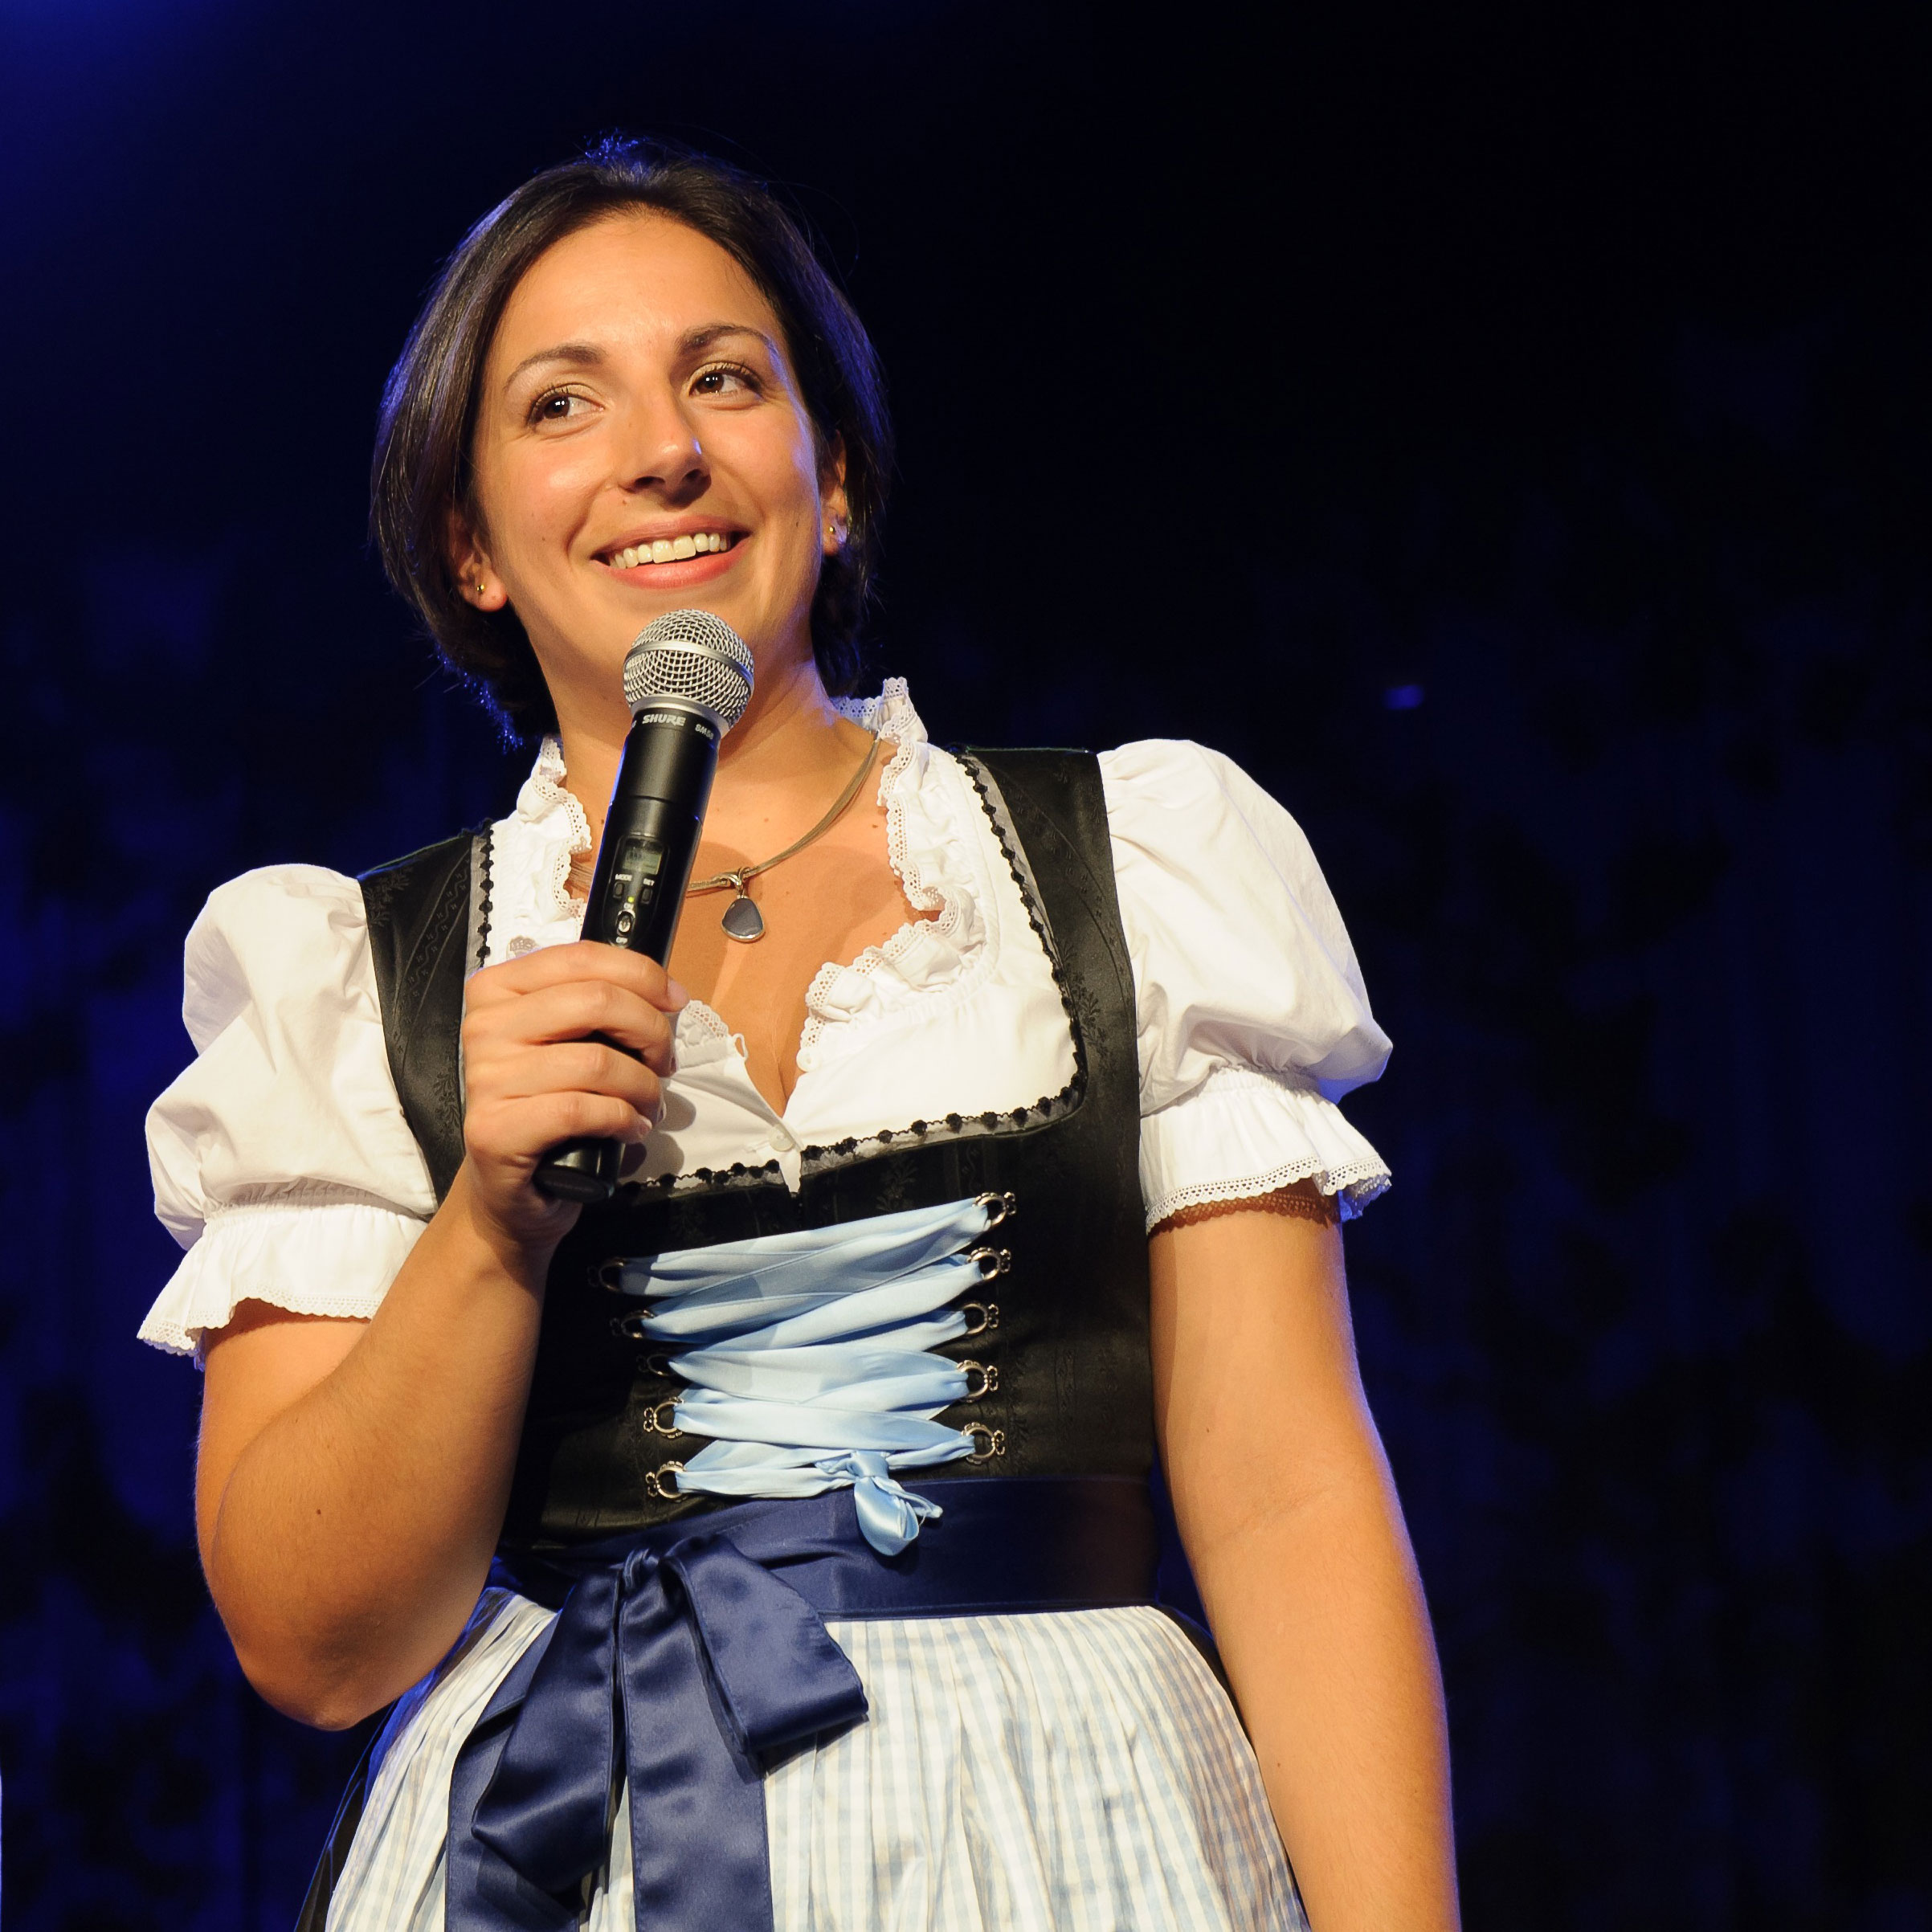 the Personal Brand Architect on stage in Bavaria